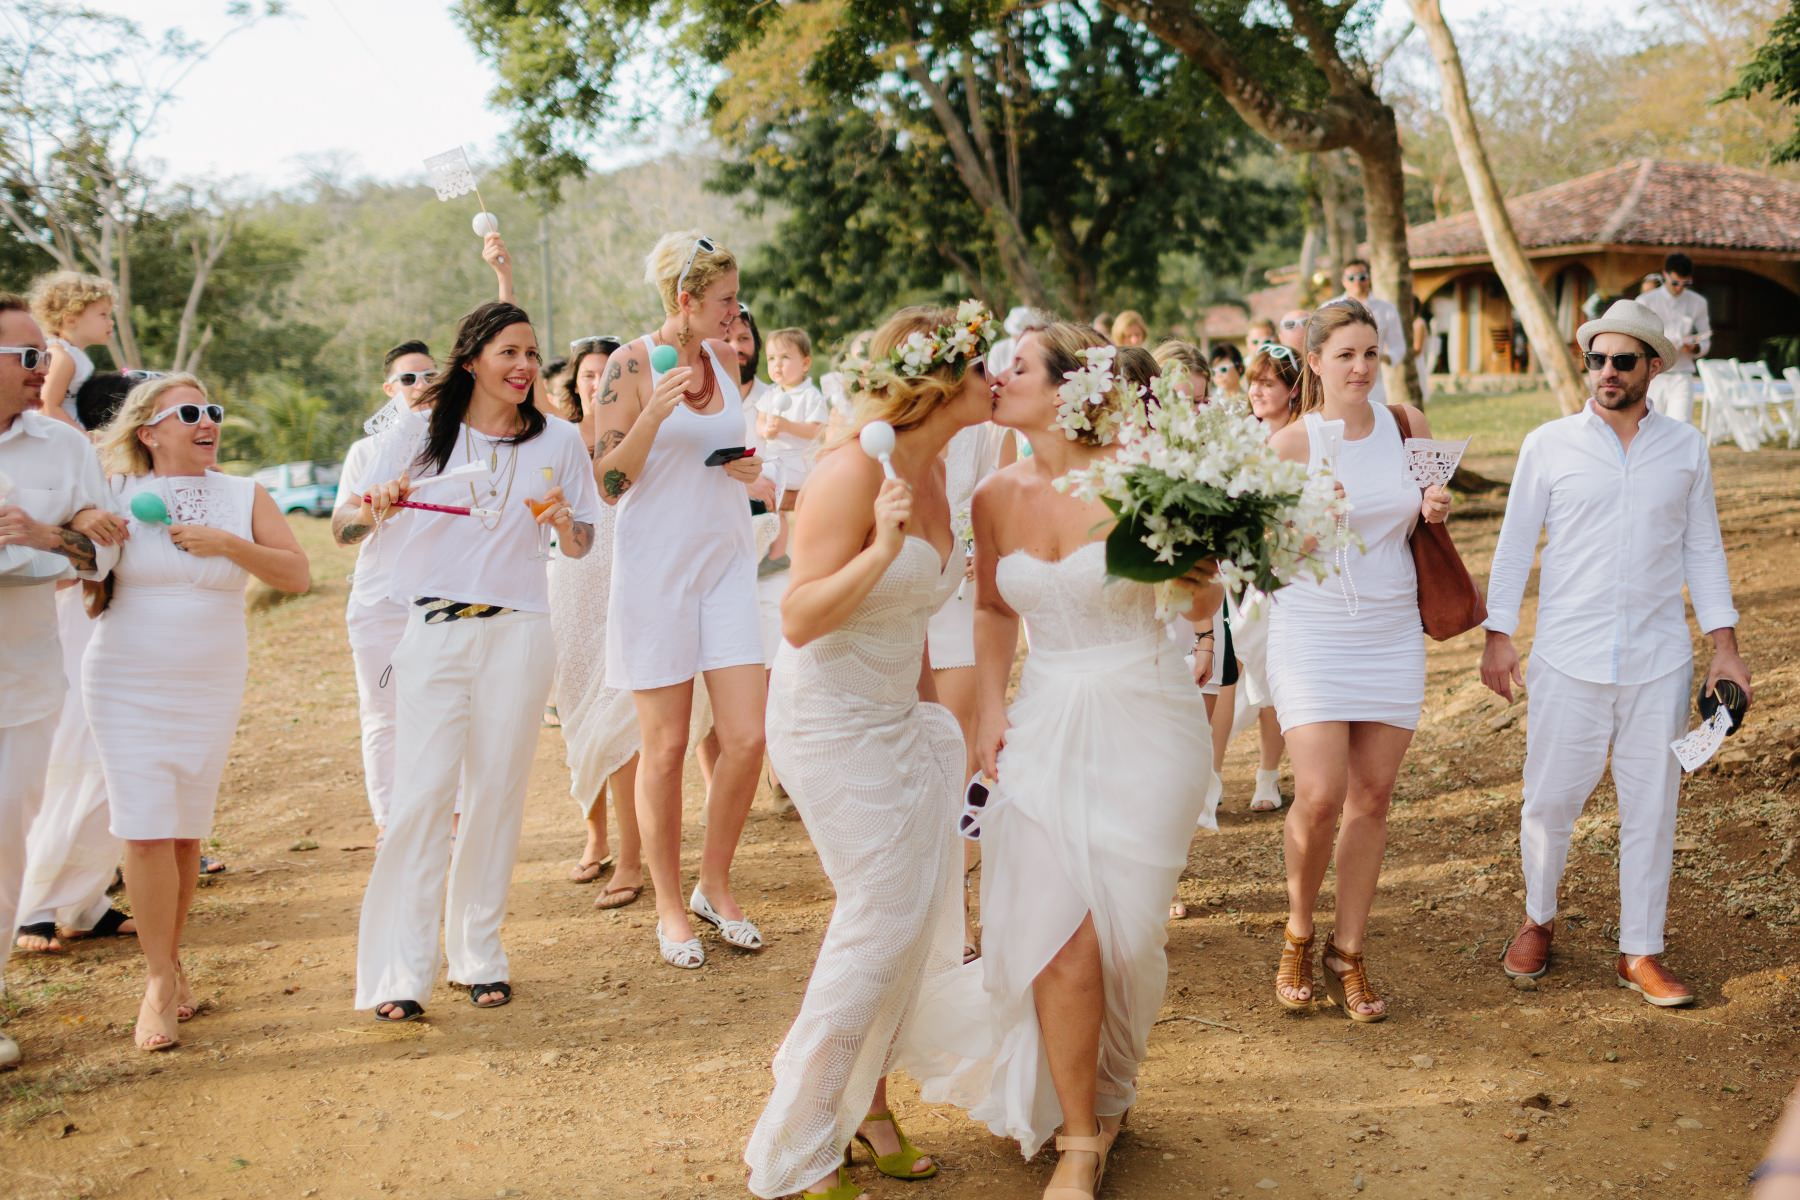 Boho Style Same-sex destination wedding Costa Rica